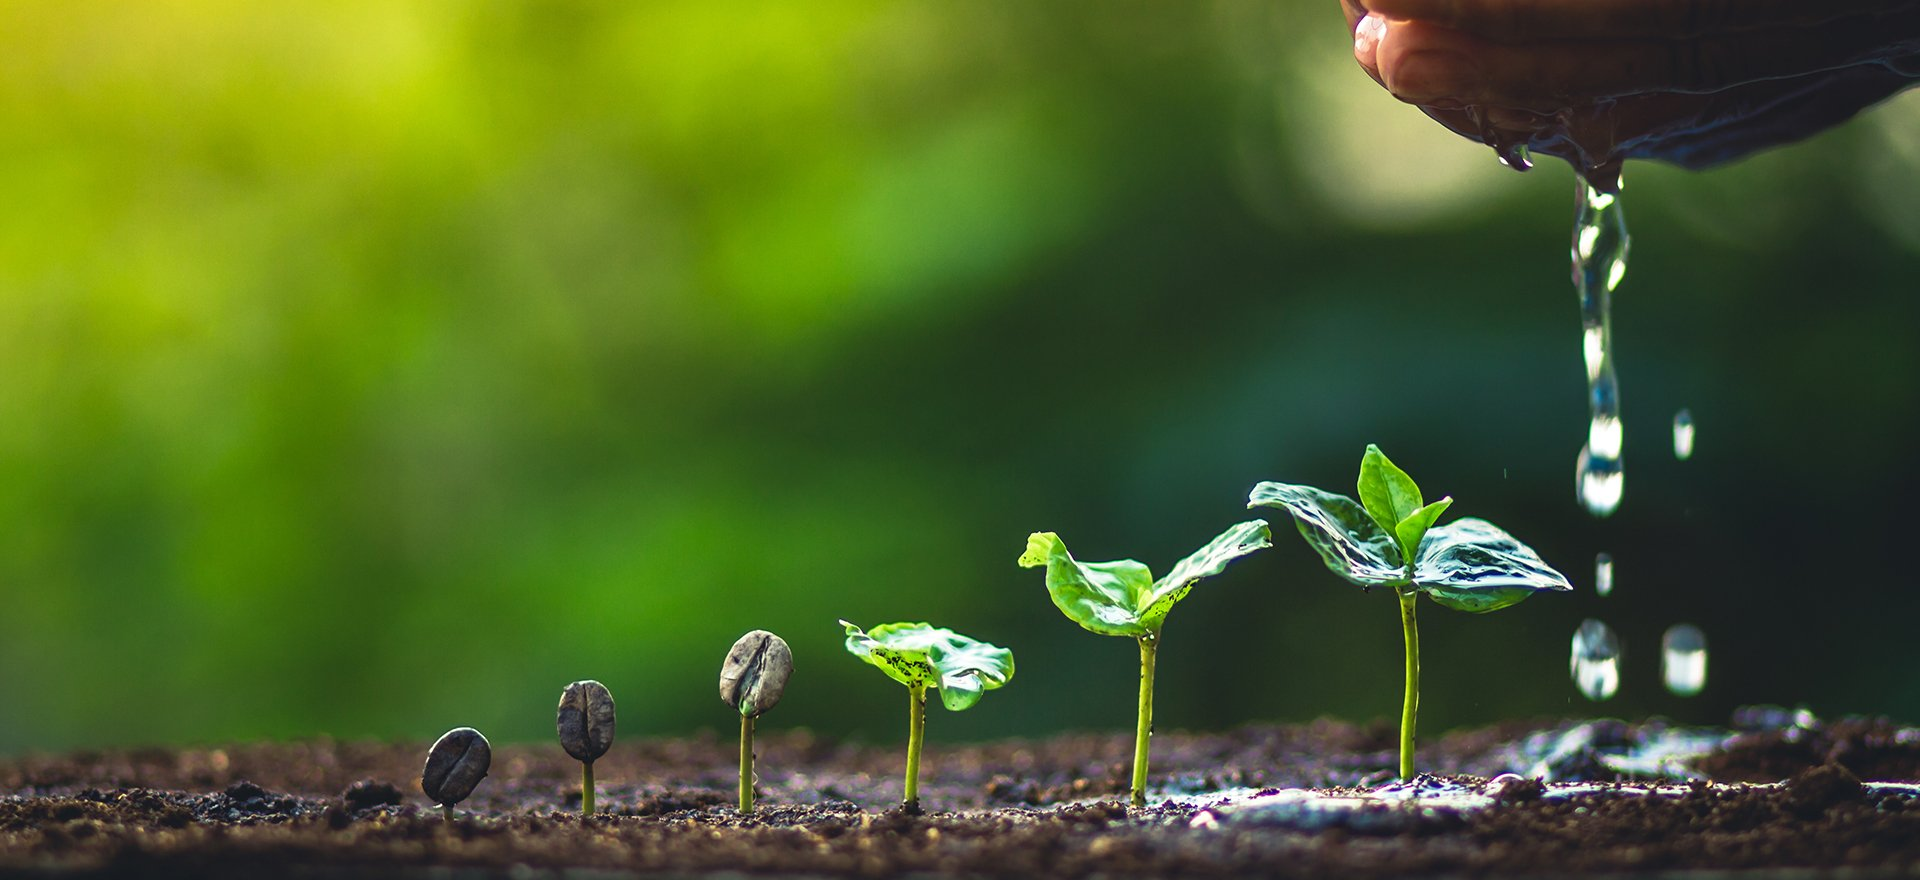 How to Use Nurturing to Turn Leads into Customers